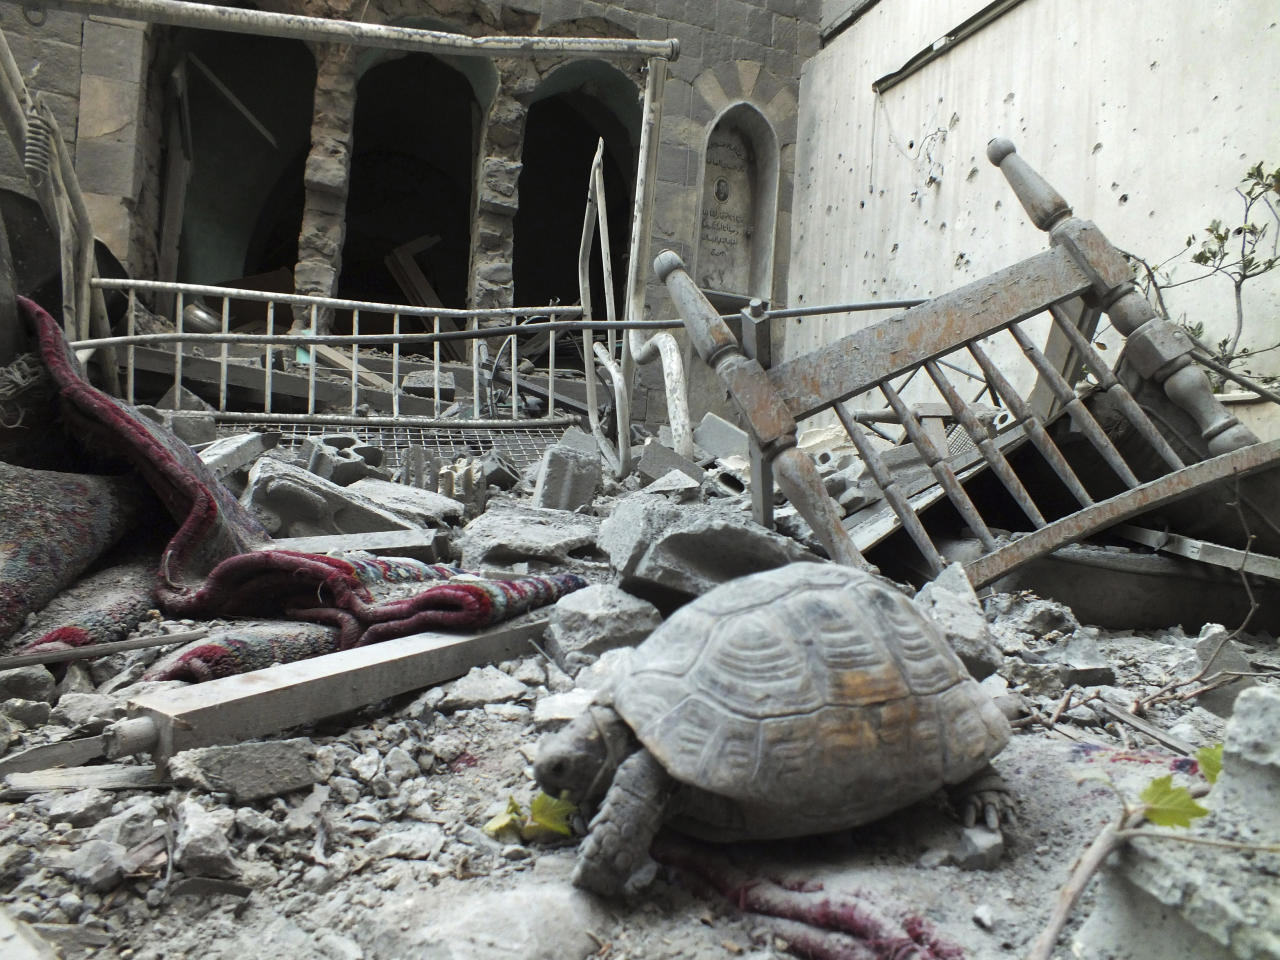 An abandoned pet tortoise walks on the debris of a damaged house in the neighbourhood of old Homs September 9, 2012. Picture taken September 9, 2012. REUTERS/ Yazen Homsy   (SYRIA - Tags: ANIMALS POLITICS CIVIL UNREST)